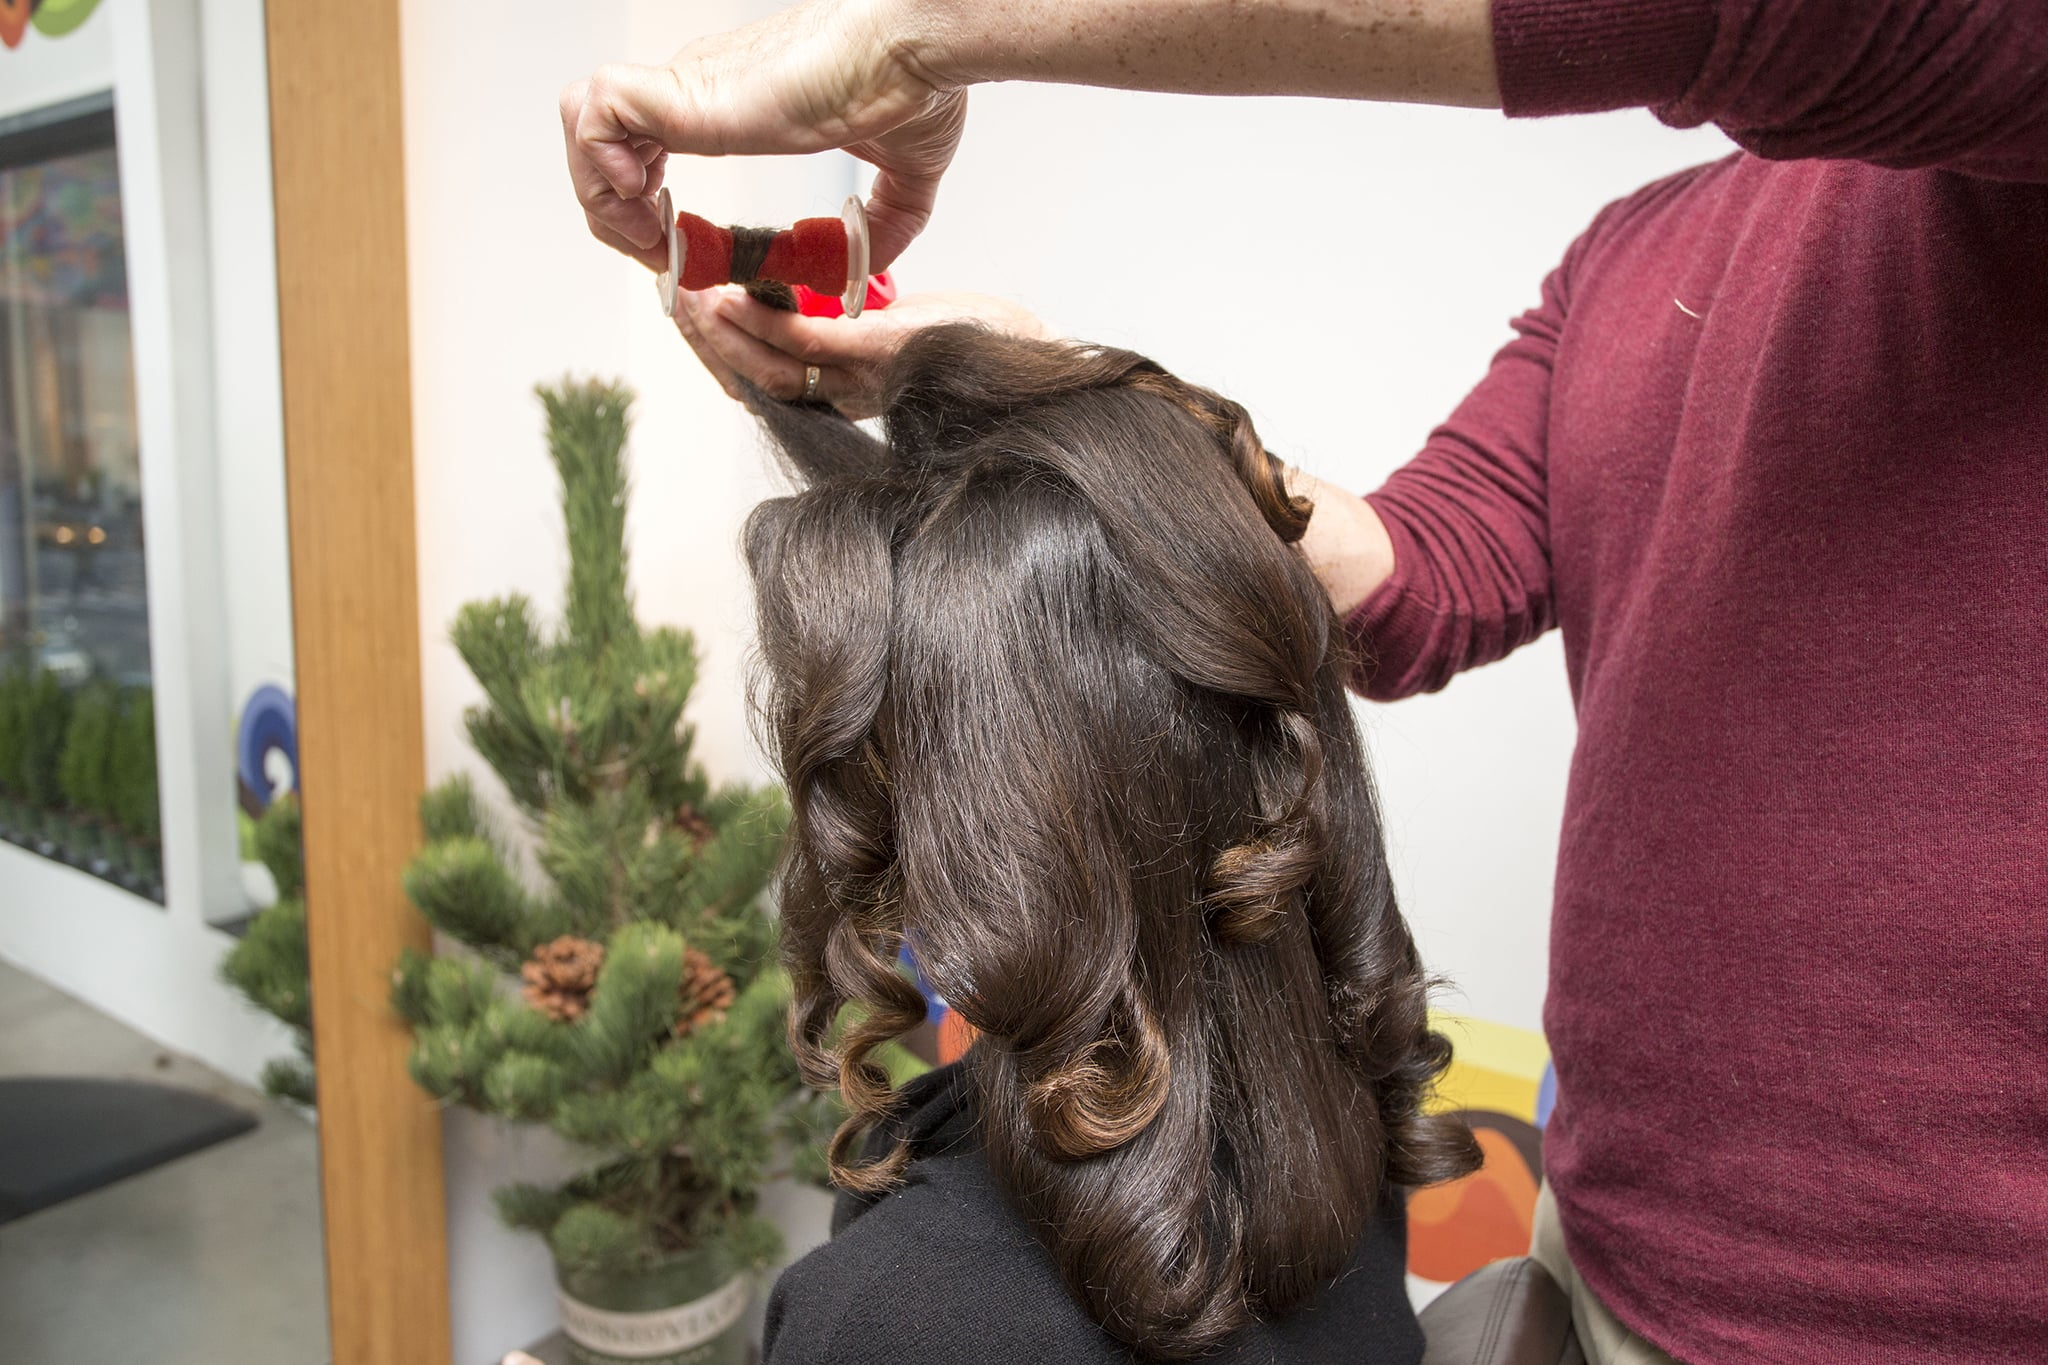 After hair has cooled completely, remove the rollers to release large curls. Make sure to twirl the hair around with your finger to form loose ringlets.